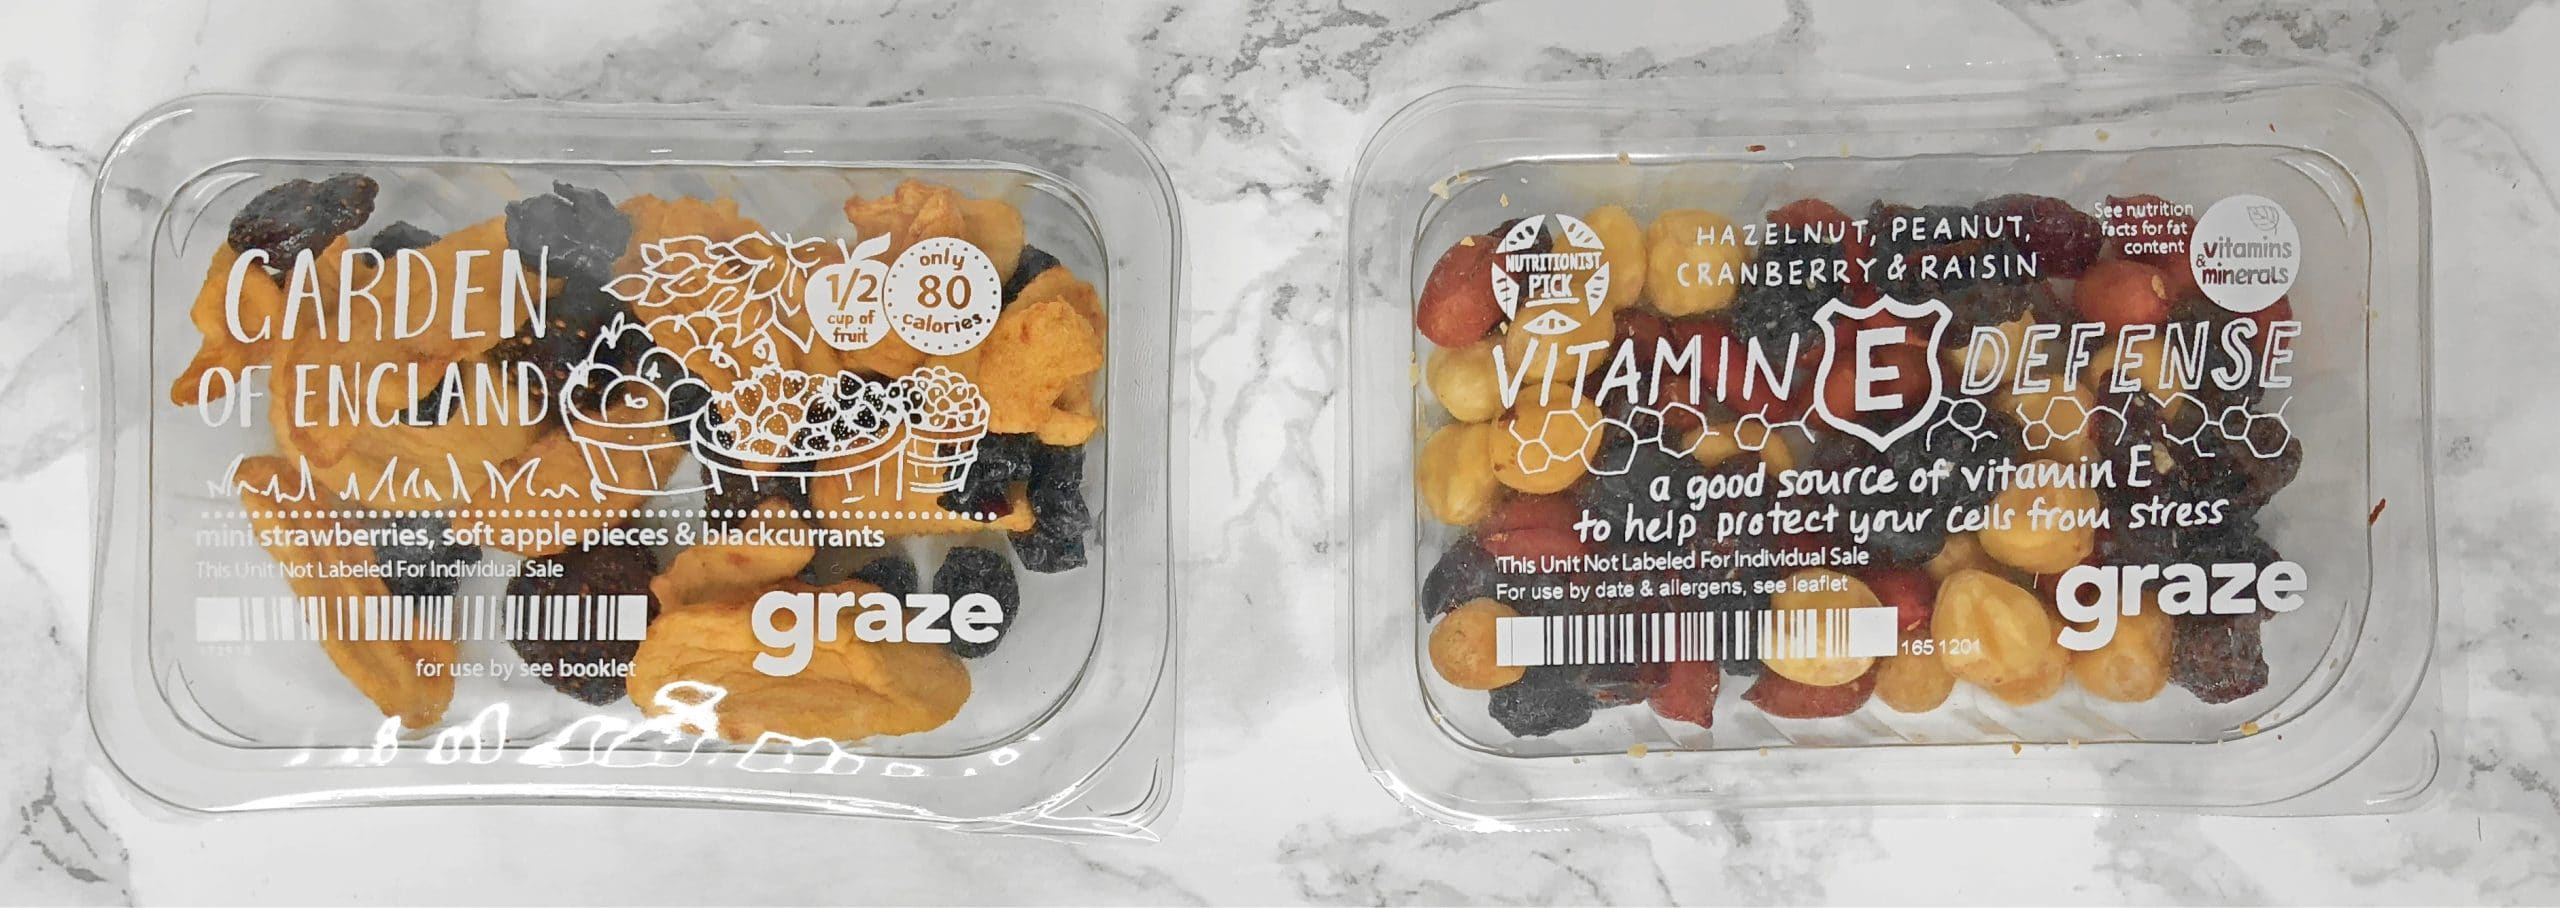 Graze Review - Garden of England and Vitamin E Defense